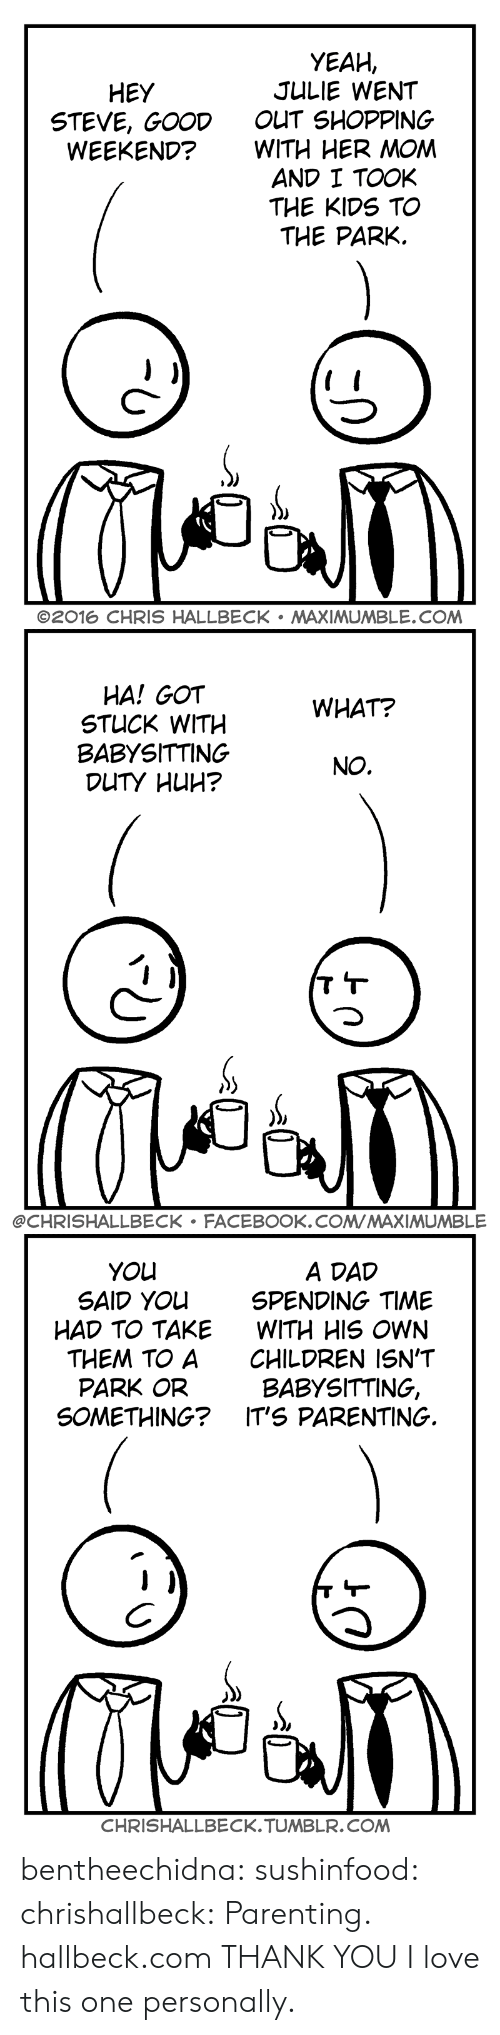 Children, Dad, and Facebook: YEAH,  JULIE WENT  OUT SHOPPING  WITH HER MOM  AND I TOOK  THE KIDS TO  THE PARK.  HEY  STEVE, GOOD  WEEKEND?  C-  ©2016 CHRIS HALLBECK . MAXIMUMBLE.COM   HA! GOT  STUCK WITH  BABYSITTING  WHAT?  NO.  @CHRISHALLBECK FACEBOOK.COMMAXIMUMBLE   A DAD  SPENDING TIME  WITH HIS OWN  CHILDREN ISN'T  BABYSITTING,  YOu  SAID YOu  HAD TO TAKE  THEM TO A  PARK OR  SOMETHING? IT'S PARENTING.  CHRISHALLBECK.TUMBLR.COM bentheechidna:  sushinfood:  chrishallbeck:  Parenting. hallbeck.com  THANK YOU  I love this one personally.